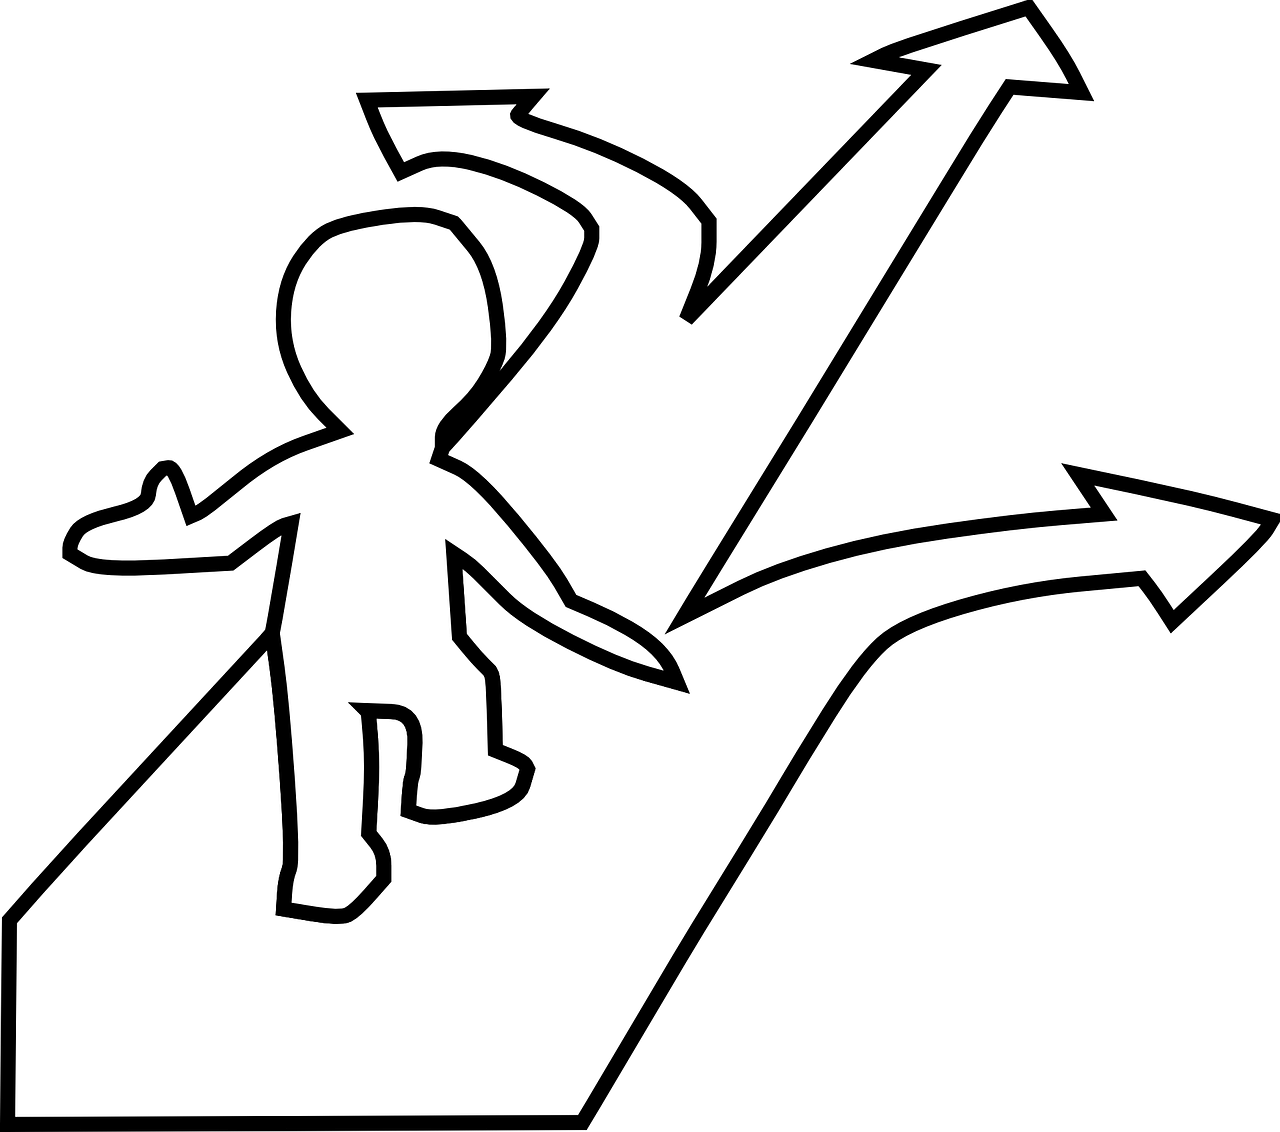 outline of person with a choice to follow one of three arrows/directions